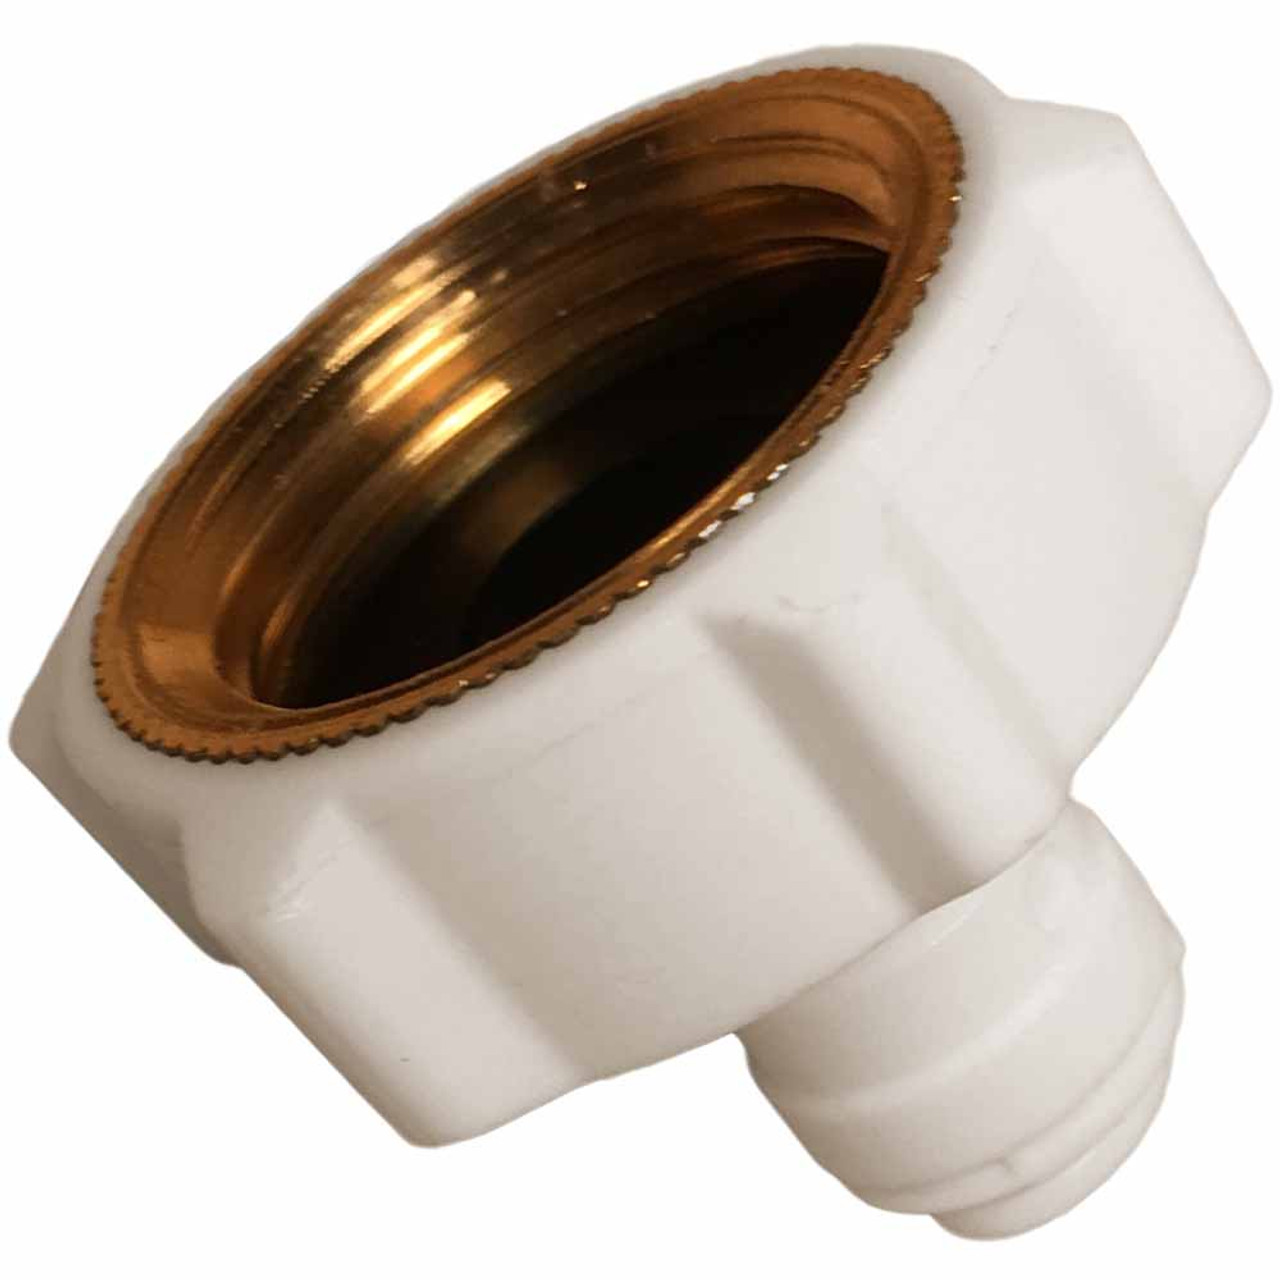 1 inch garden hose. Garden Hose Adapter With 1/4-inch Quick Connect 1 Inch N